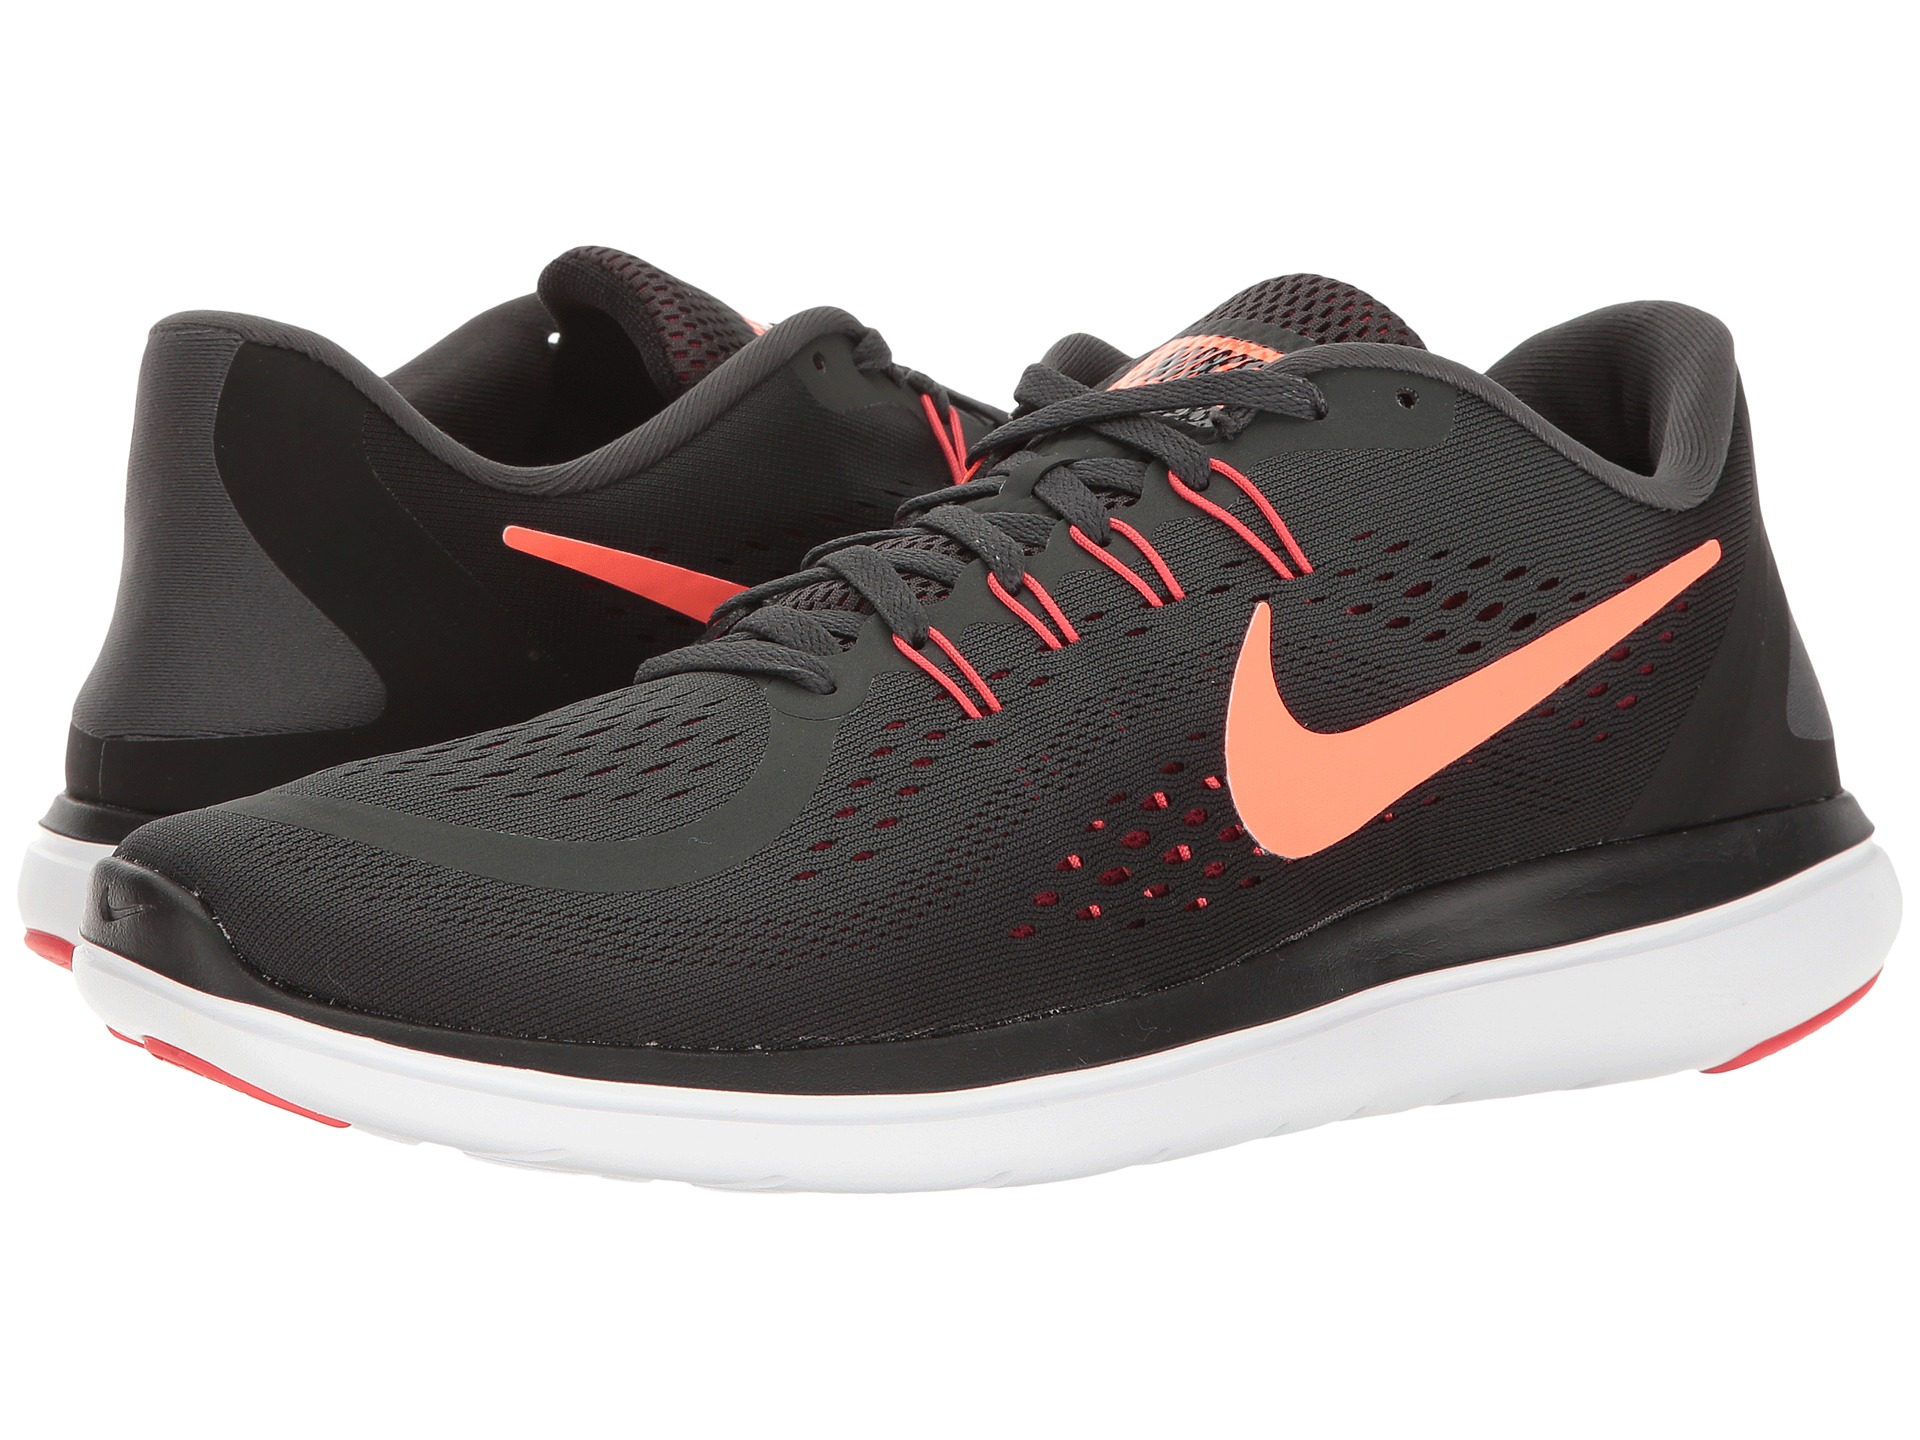 Nike Men's Shoes | eBay